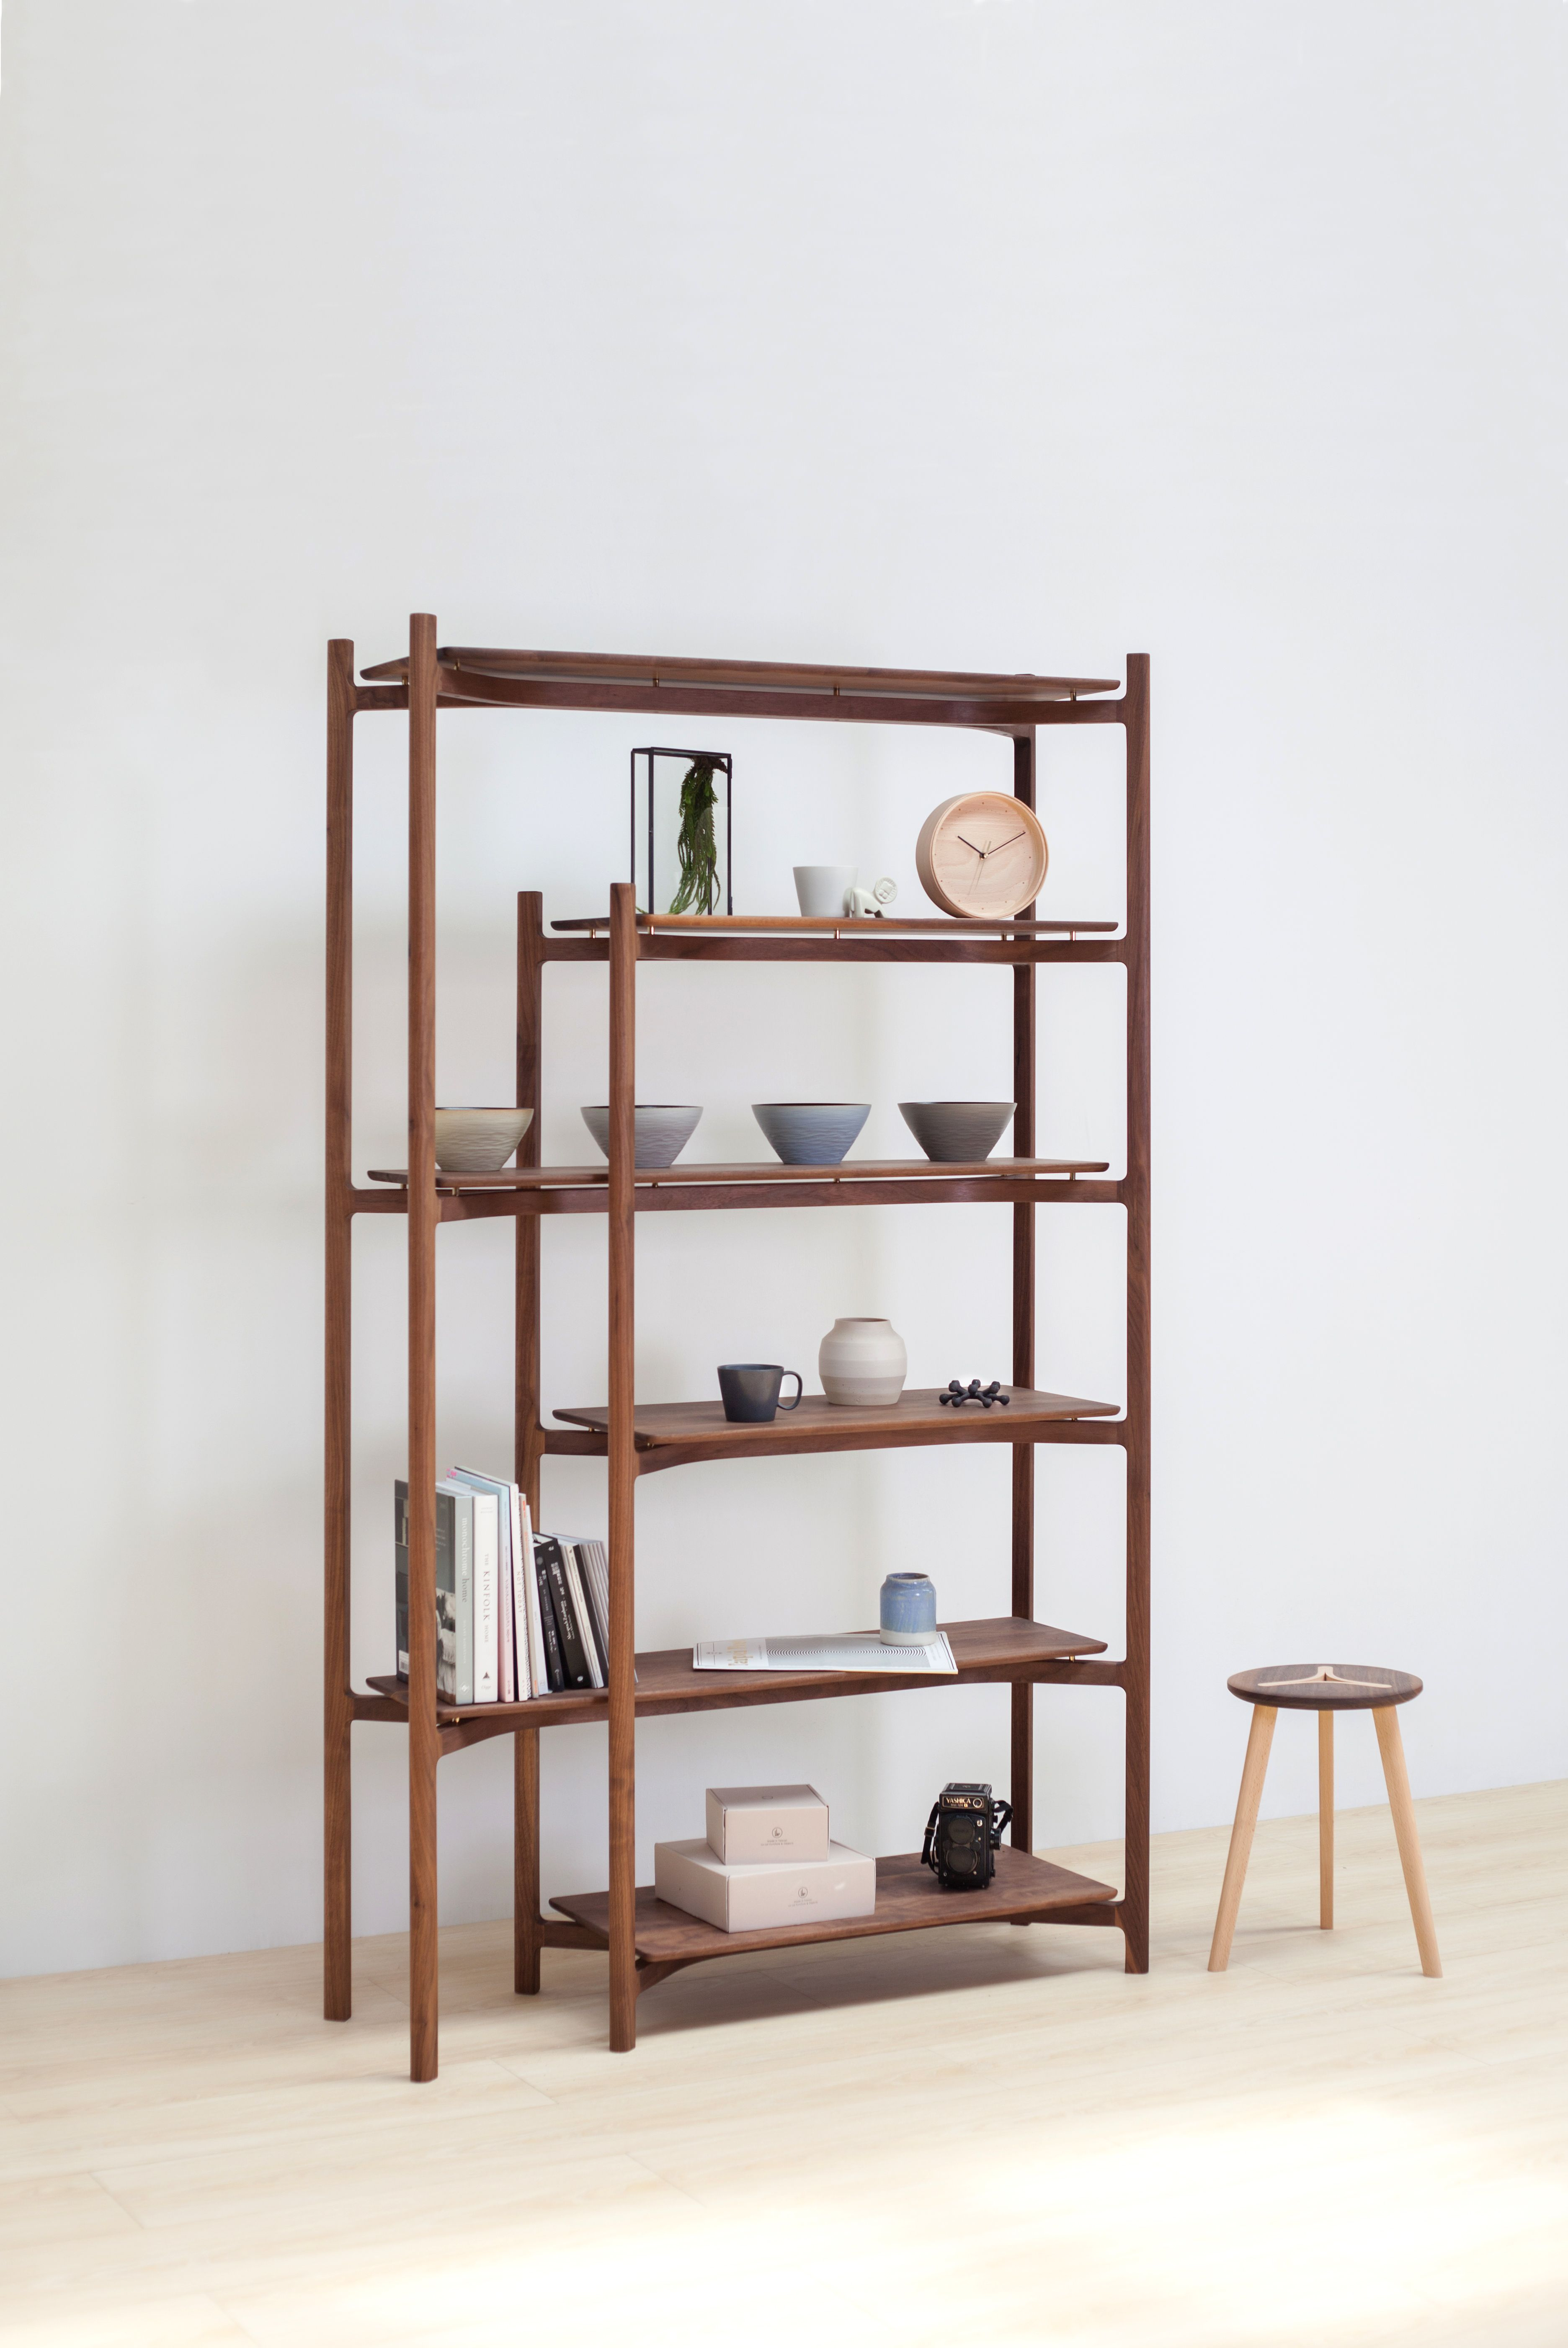 Pin de Eugeski Wood Soul en shelves | Pinterest | Libreros ...